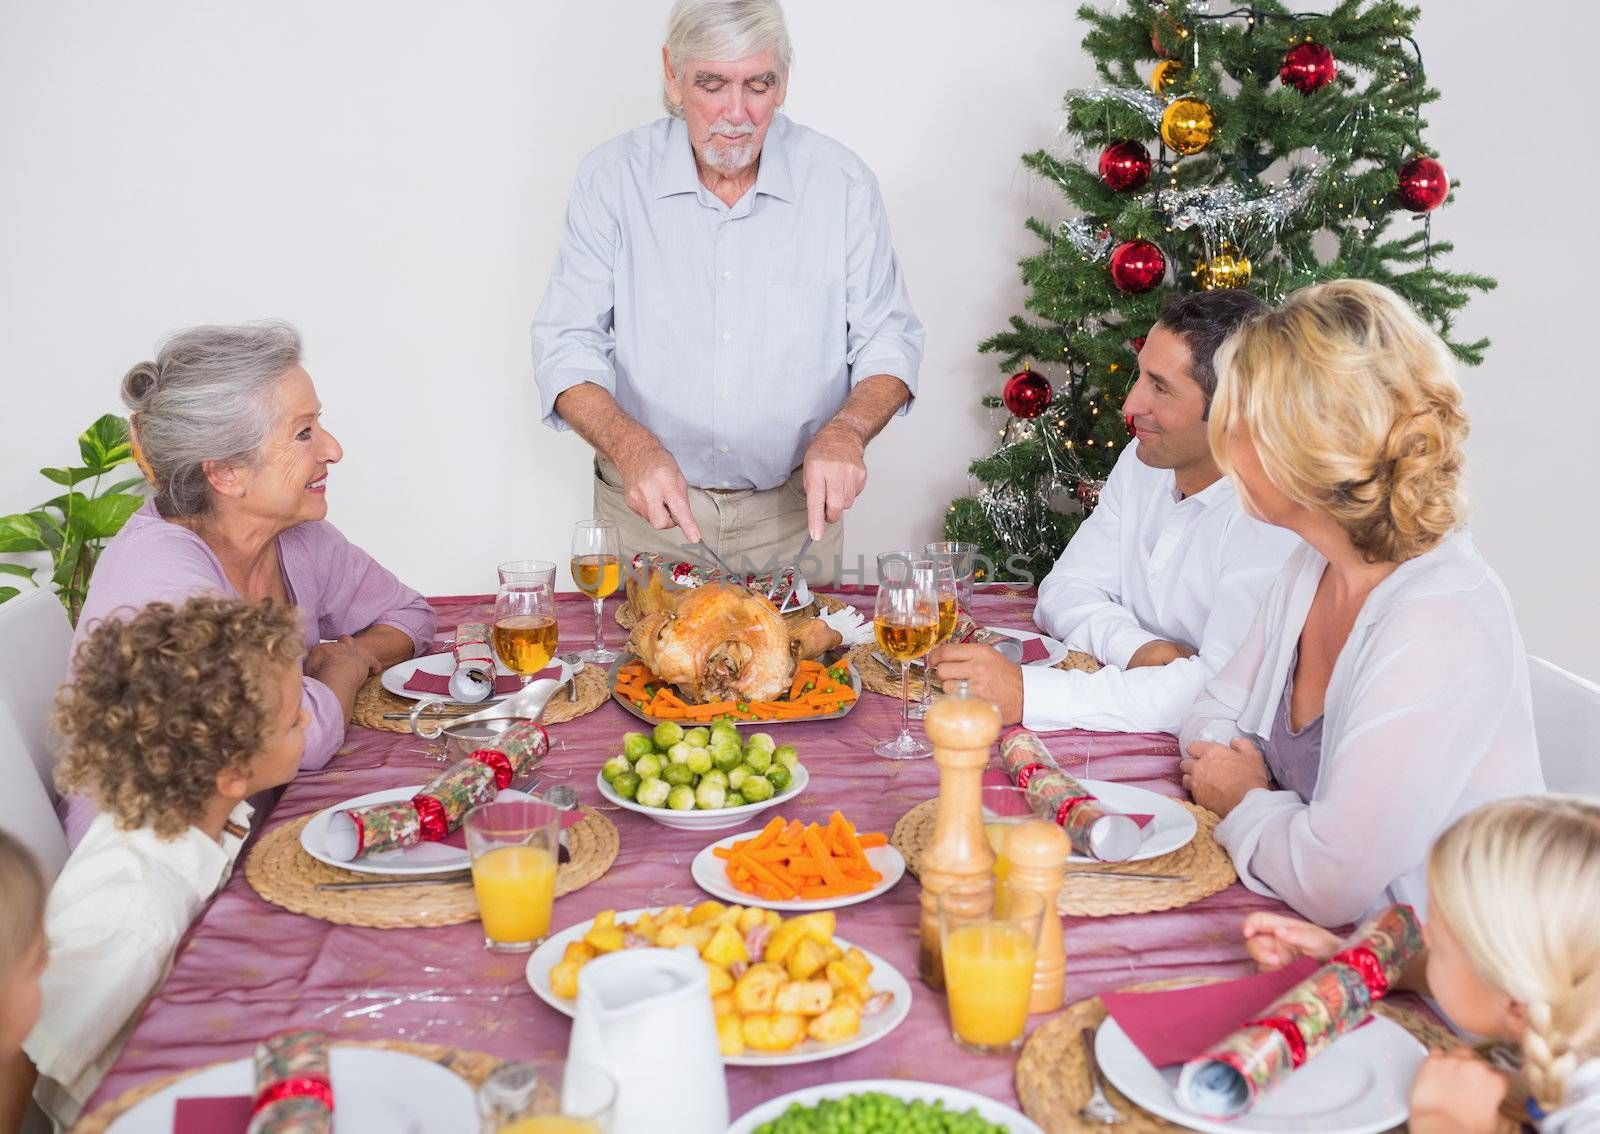 Grandfather carving the turkey for christmas dinner